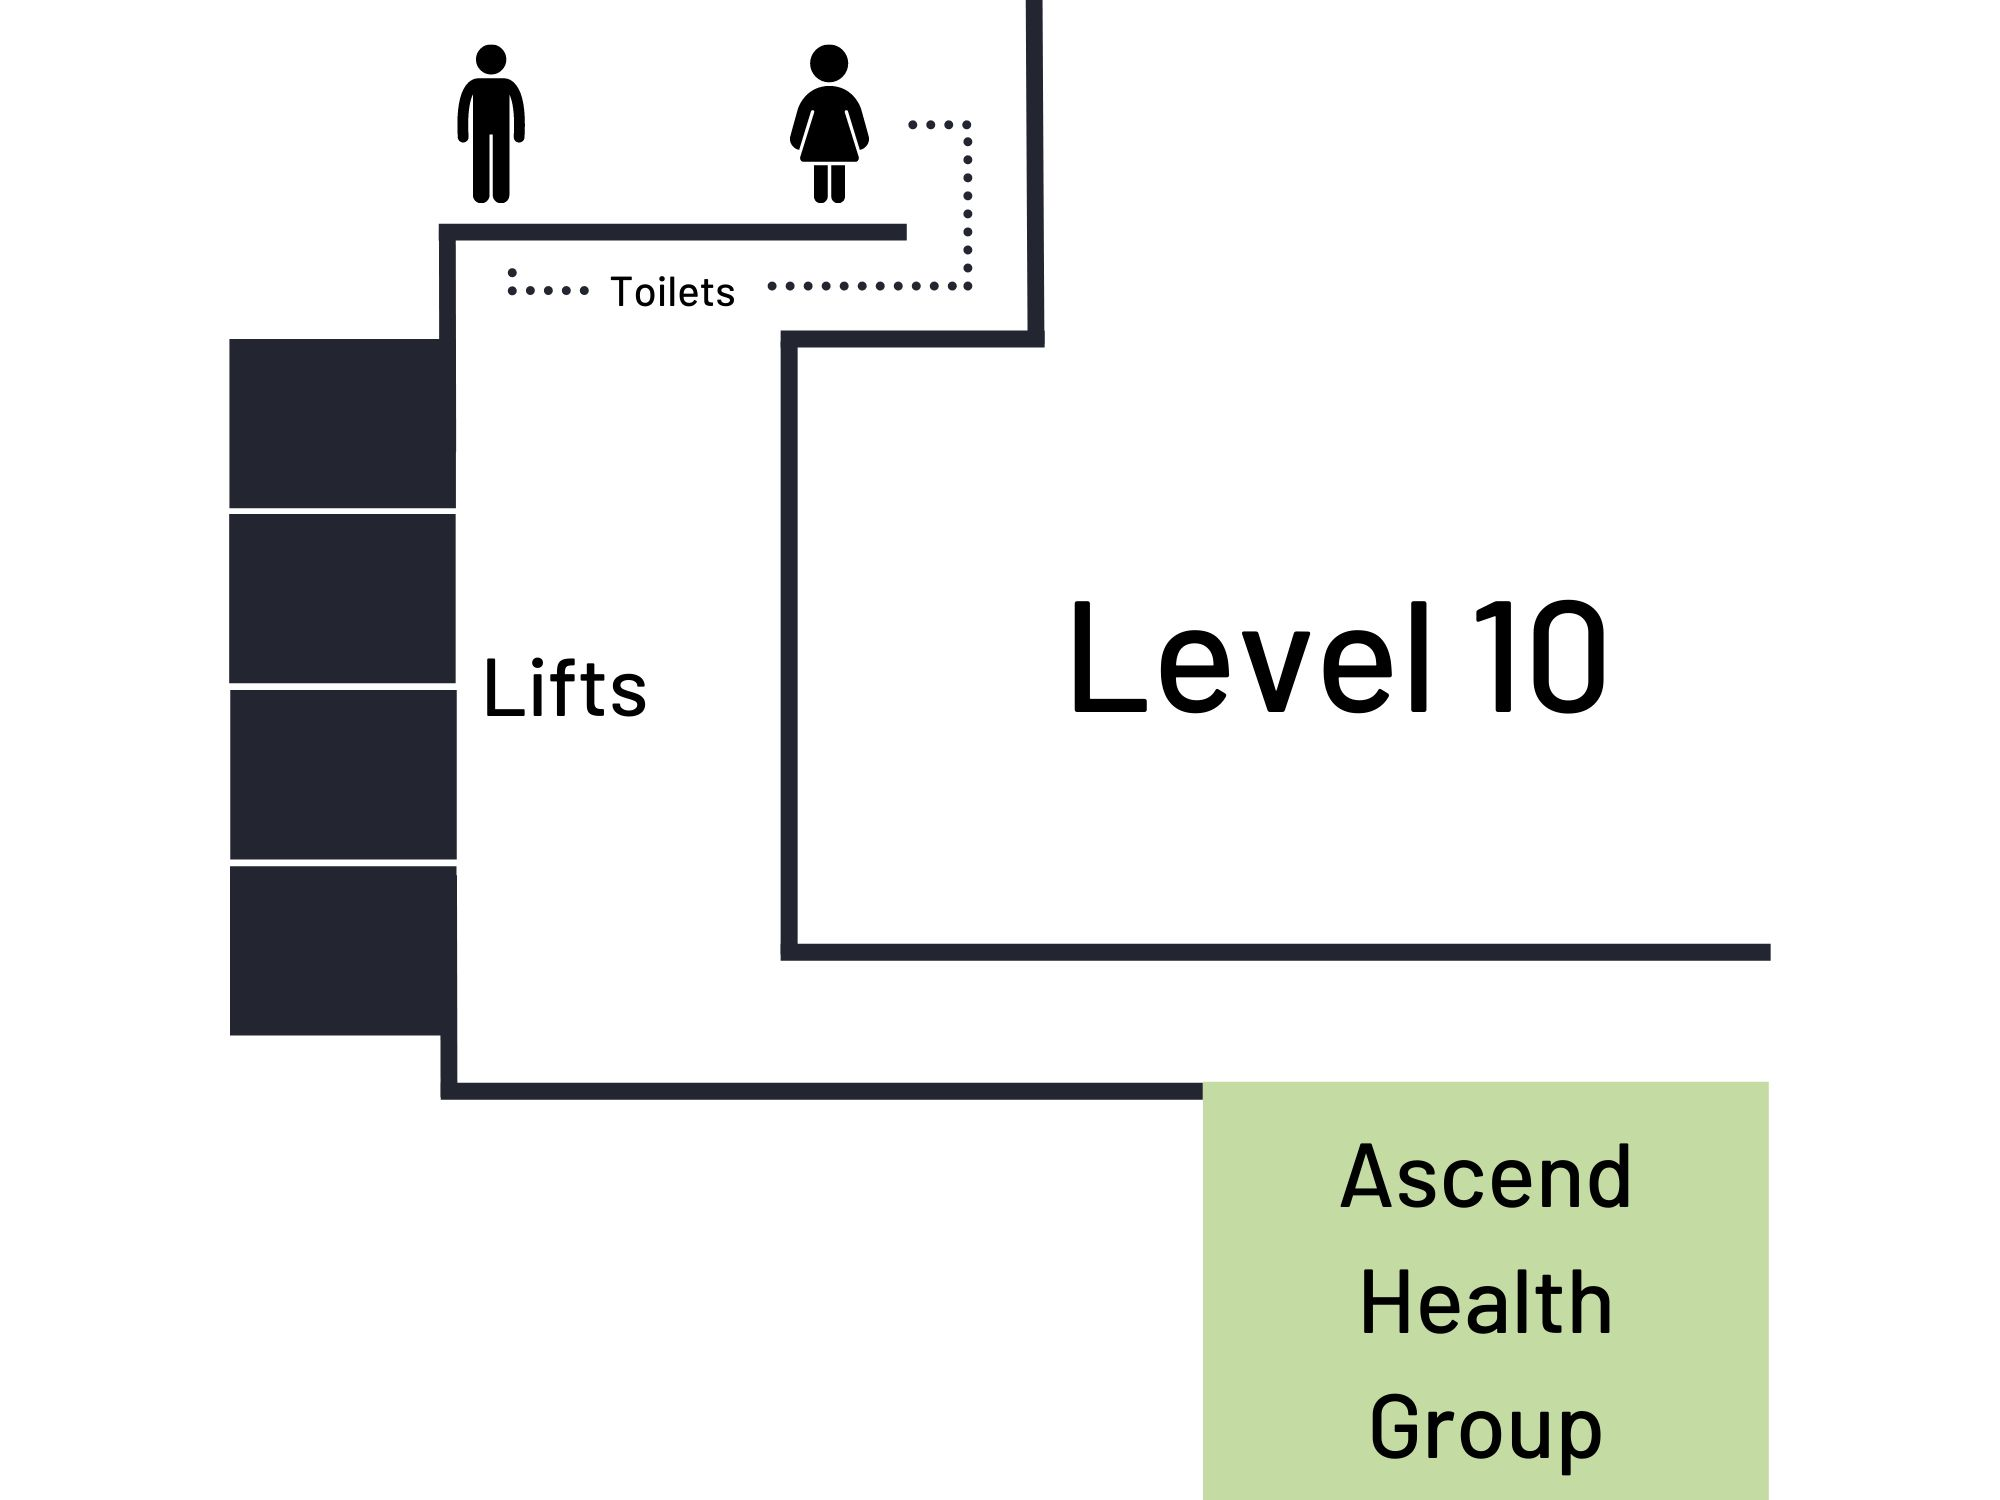 Close up image of the location of Ascend Health Group on Level 10